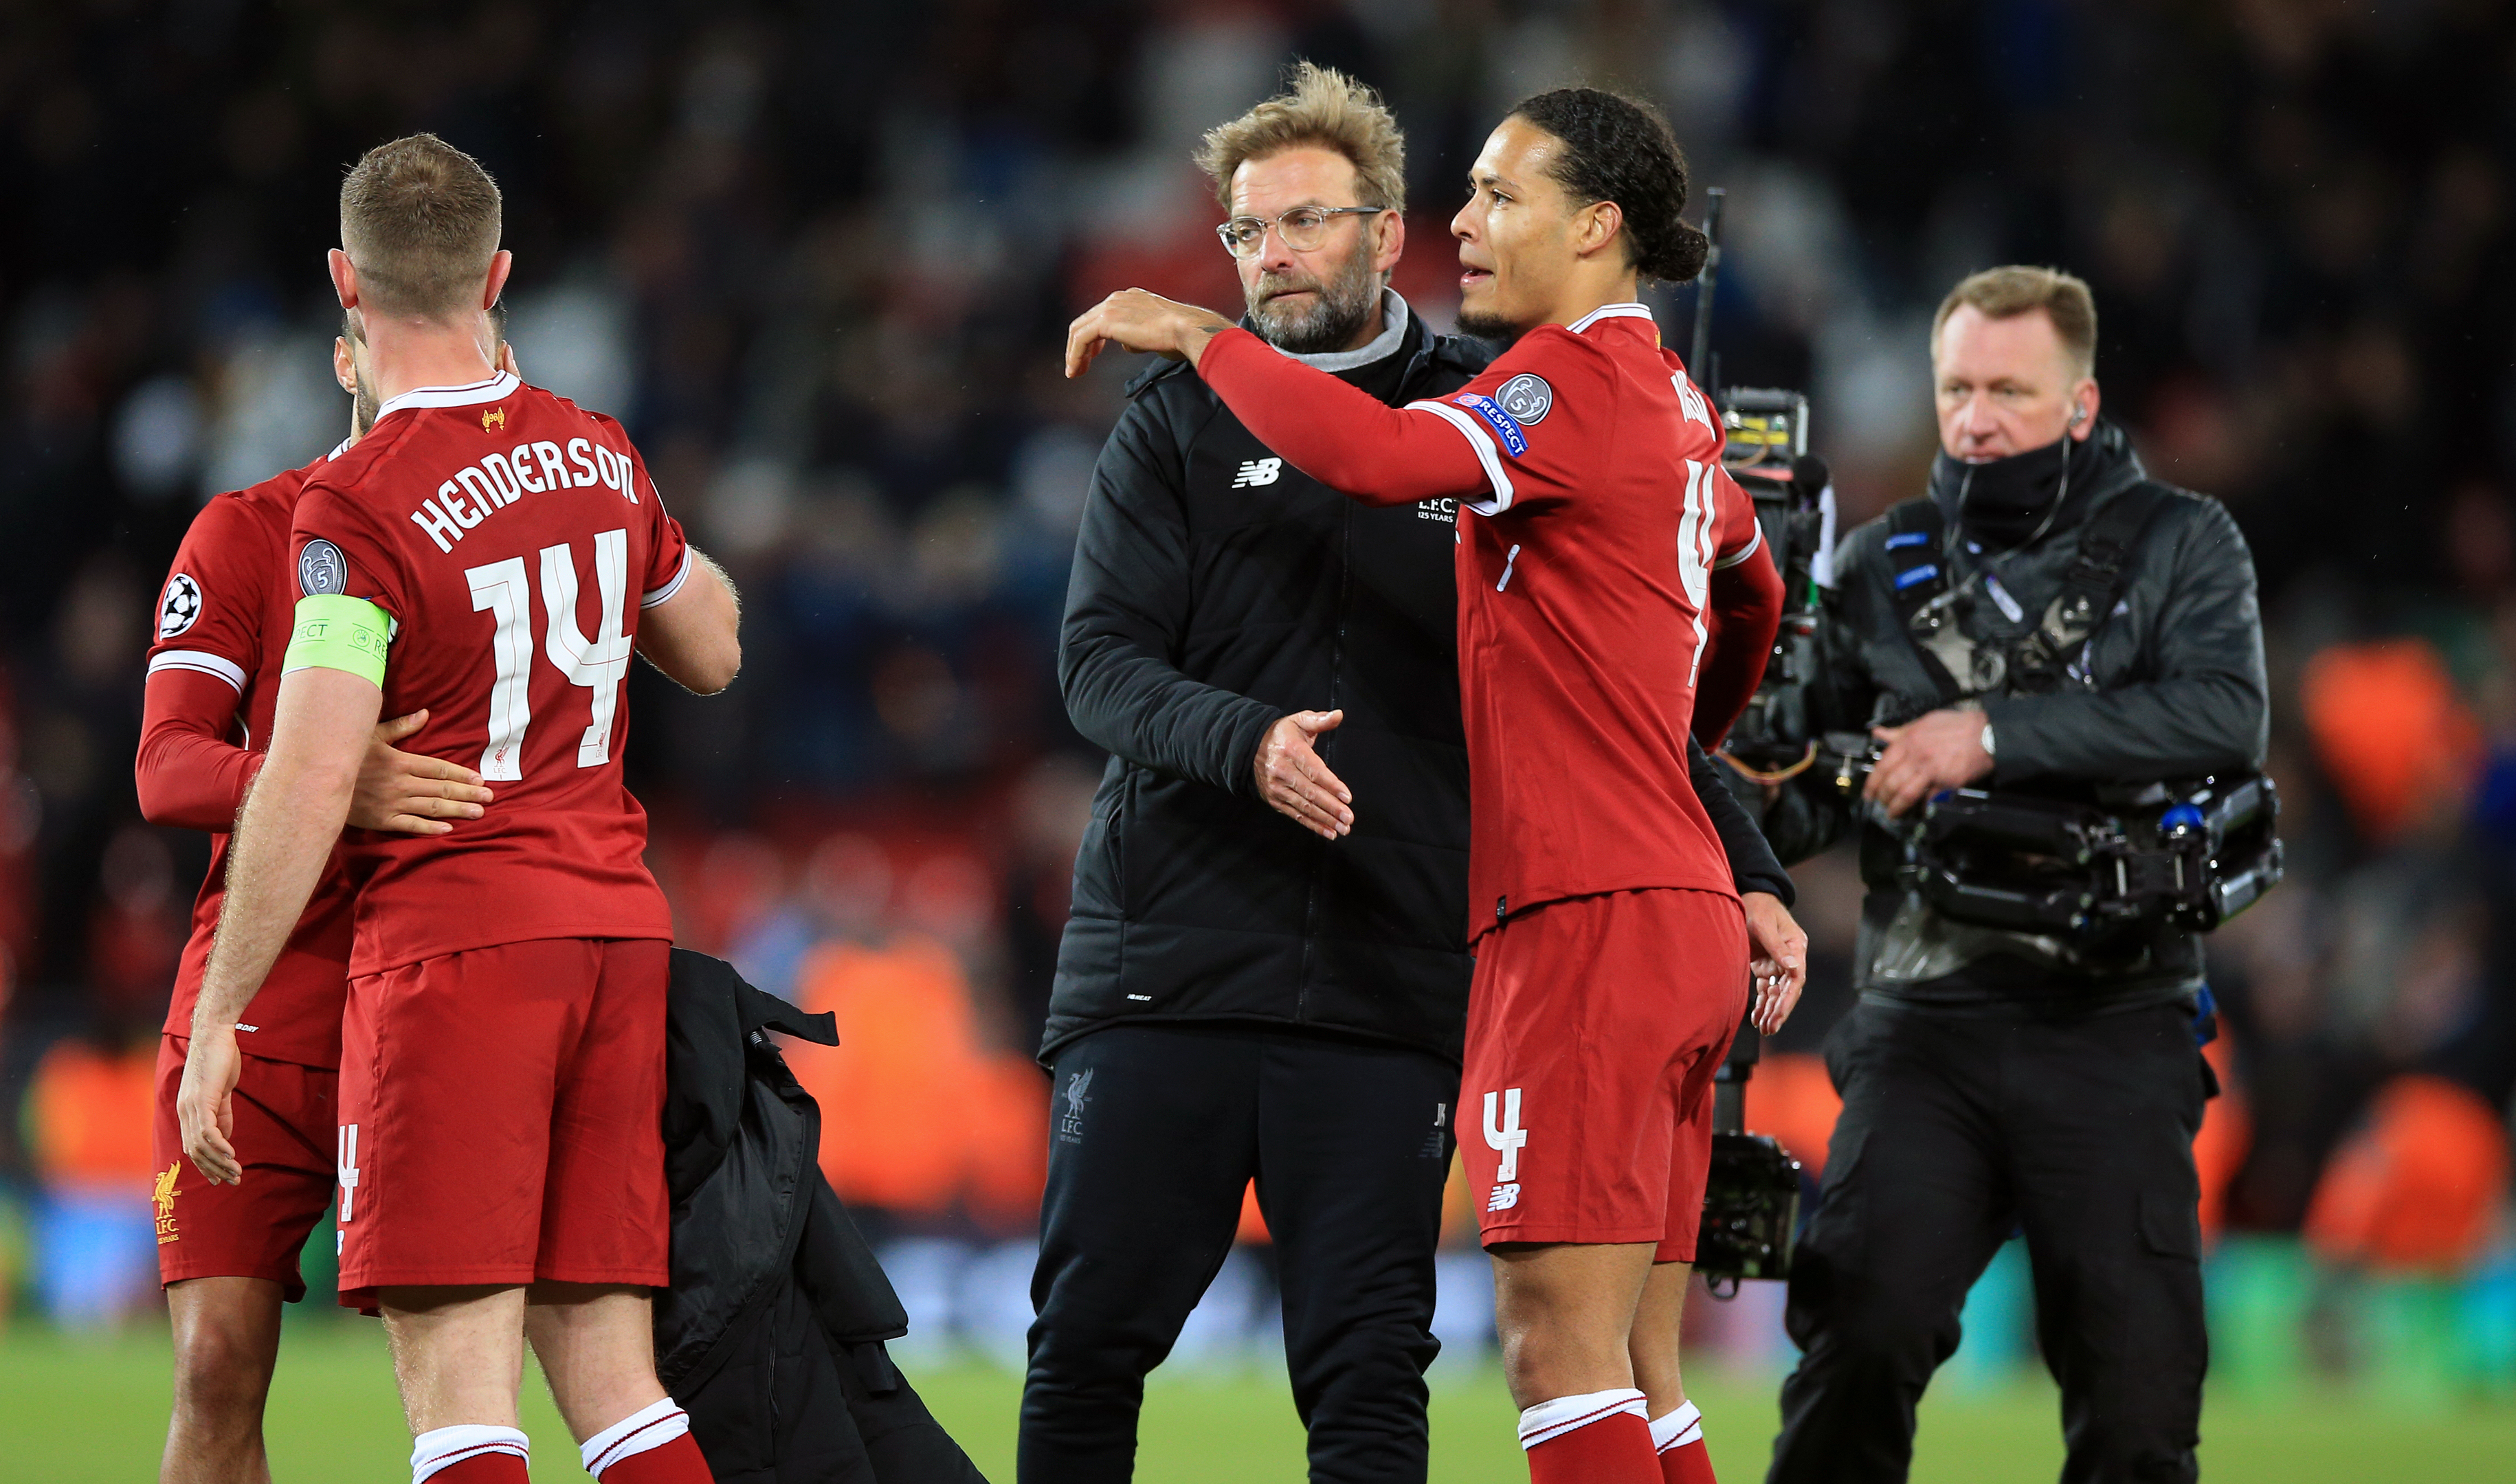 Liverpool manager Jurgen Klopp celebrates victory with Virgil van Dijk after the UEFA Champions League quarter final, first leg match at Anfield, Liverpool (PA)